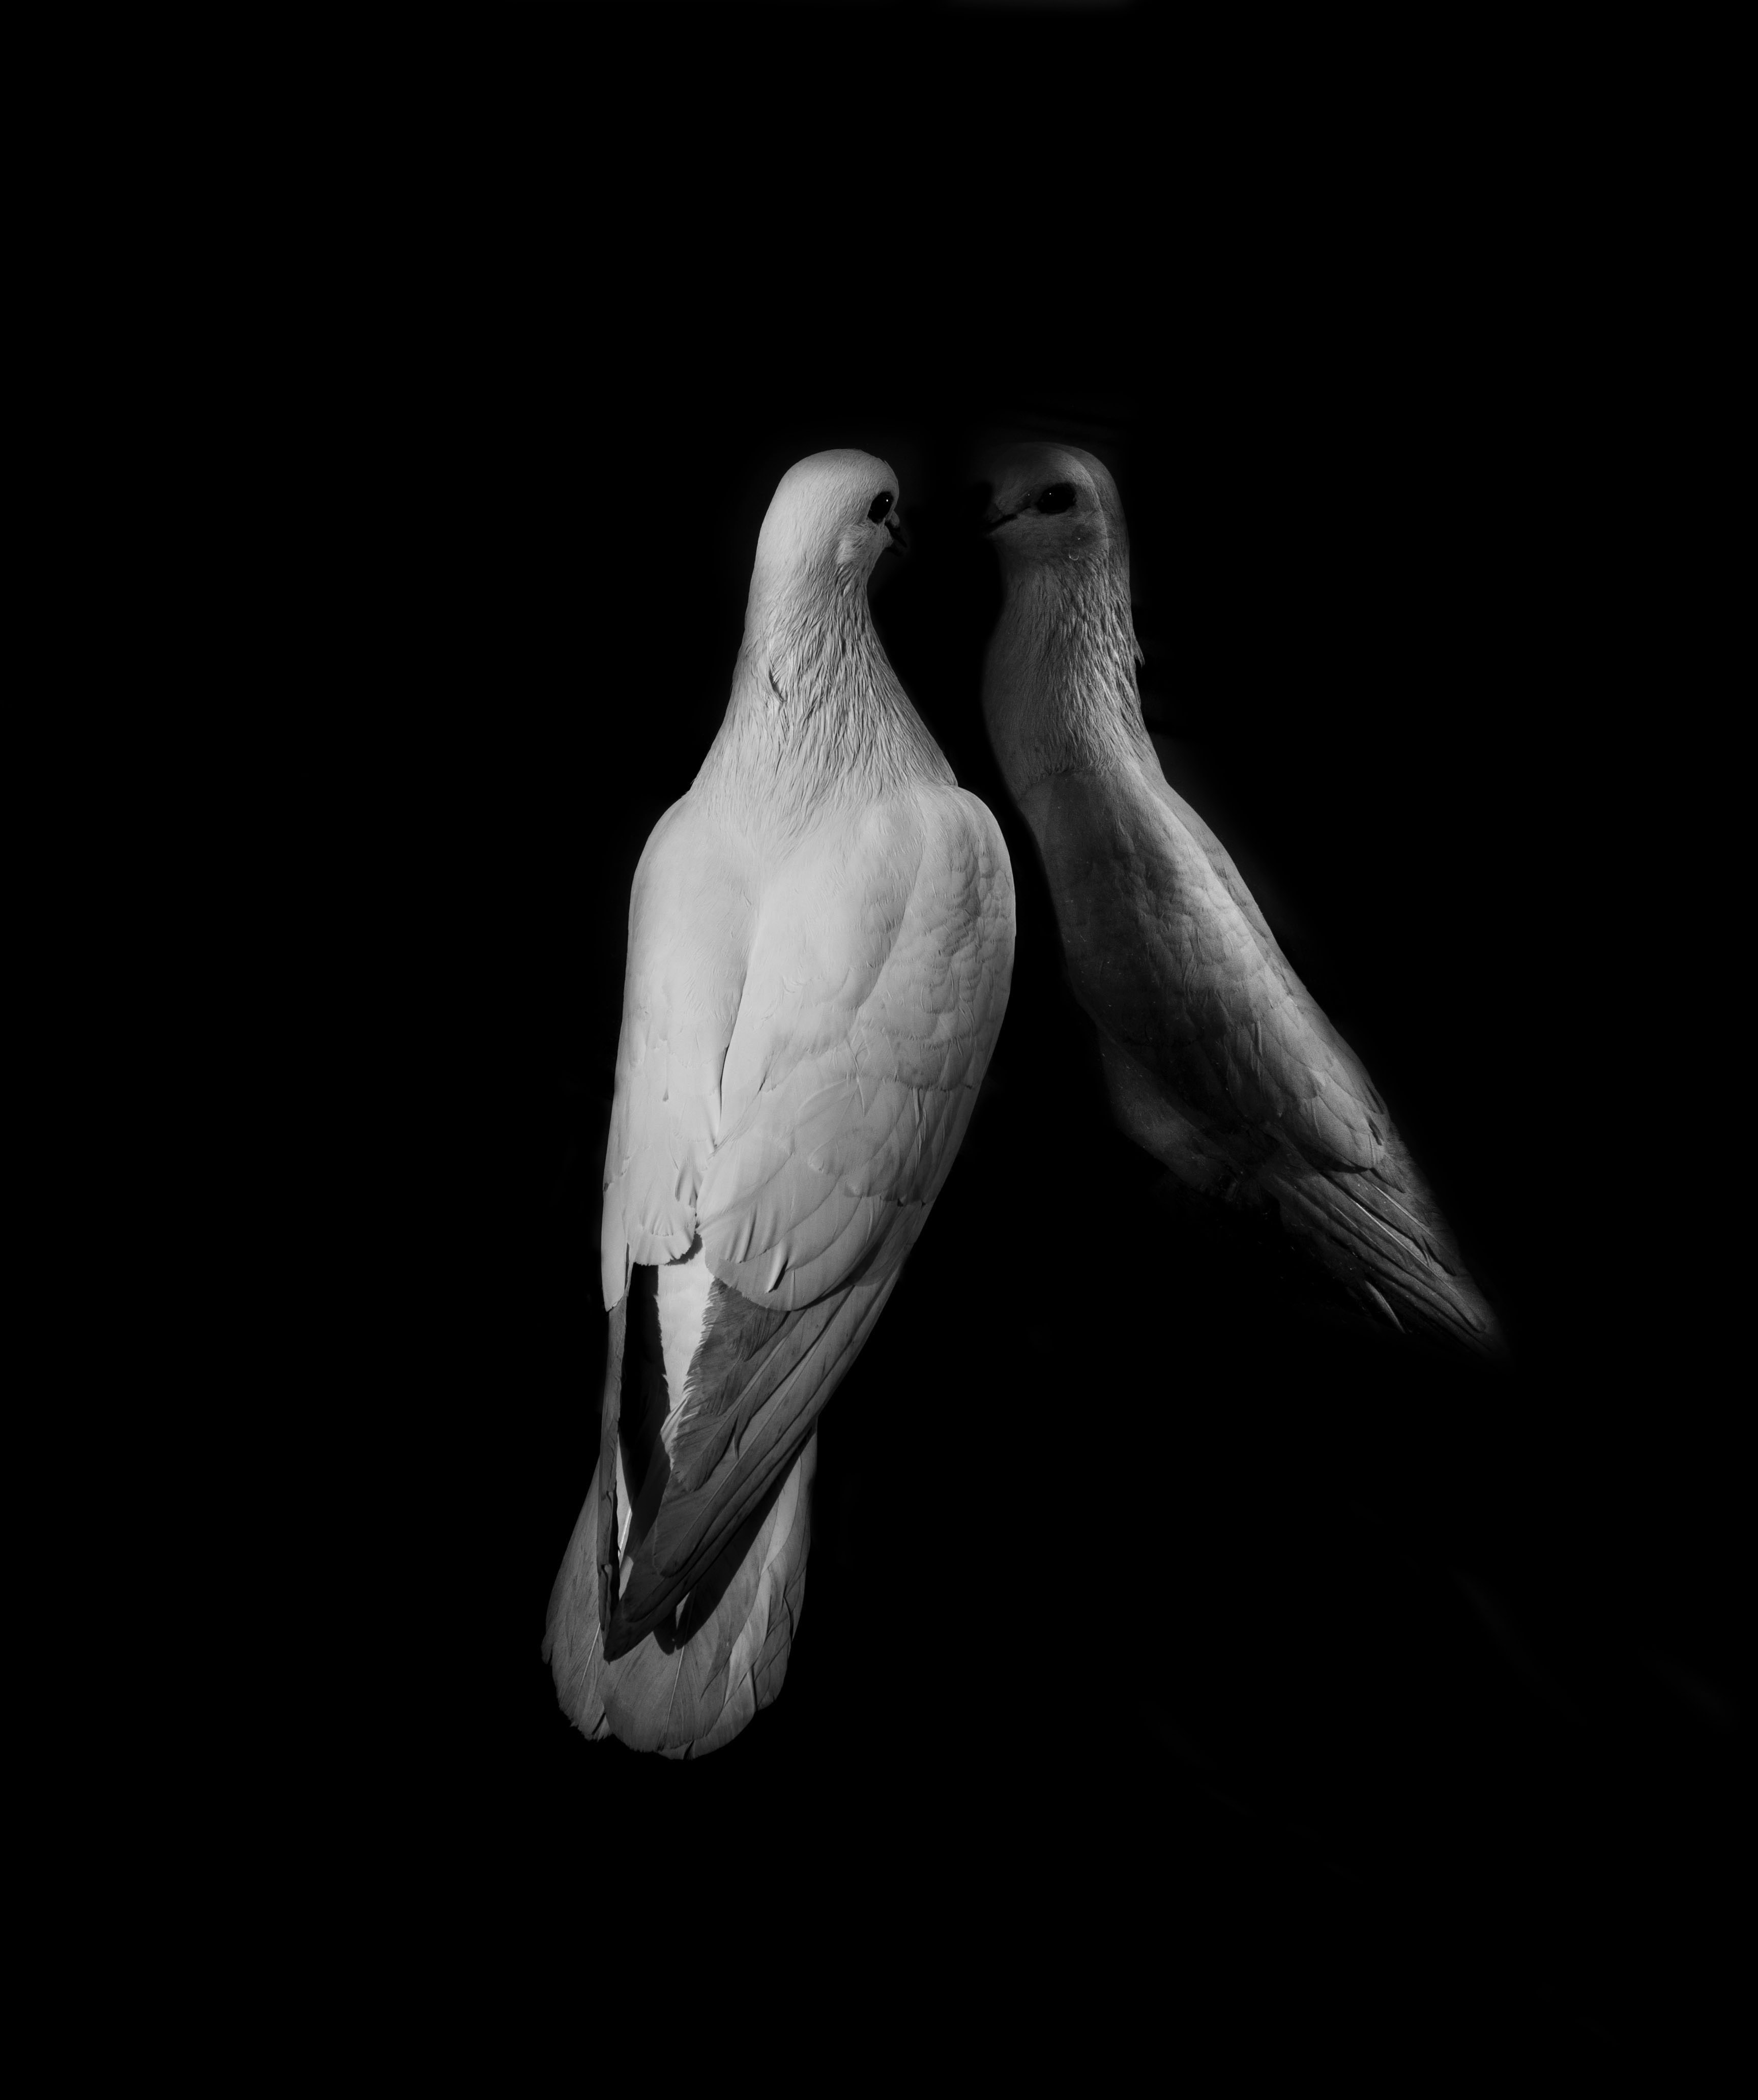 A bird staring at itself with a dark background.